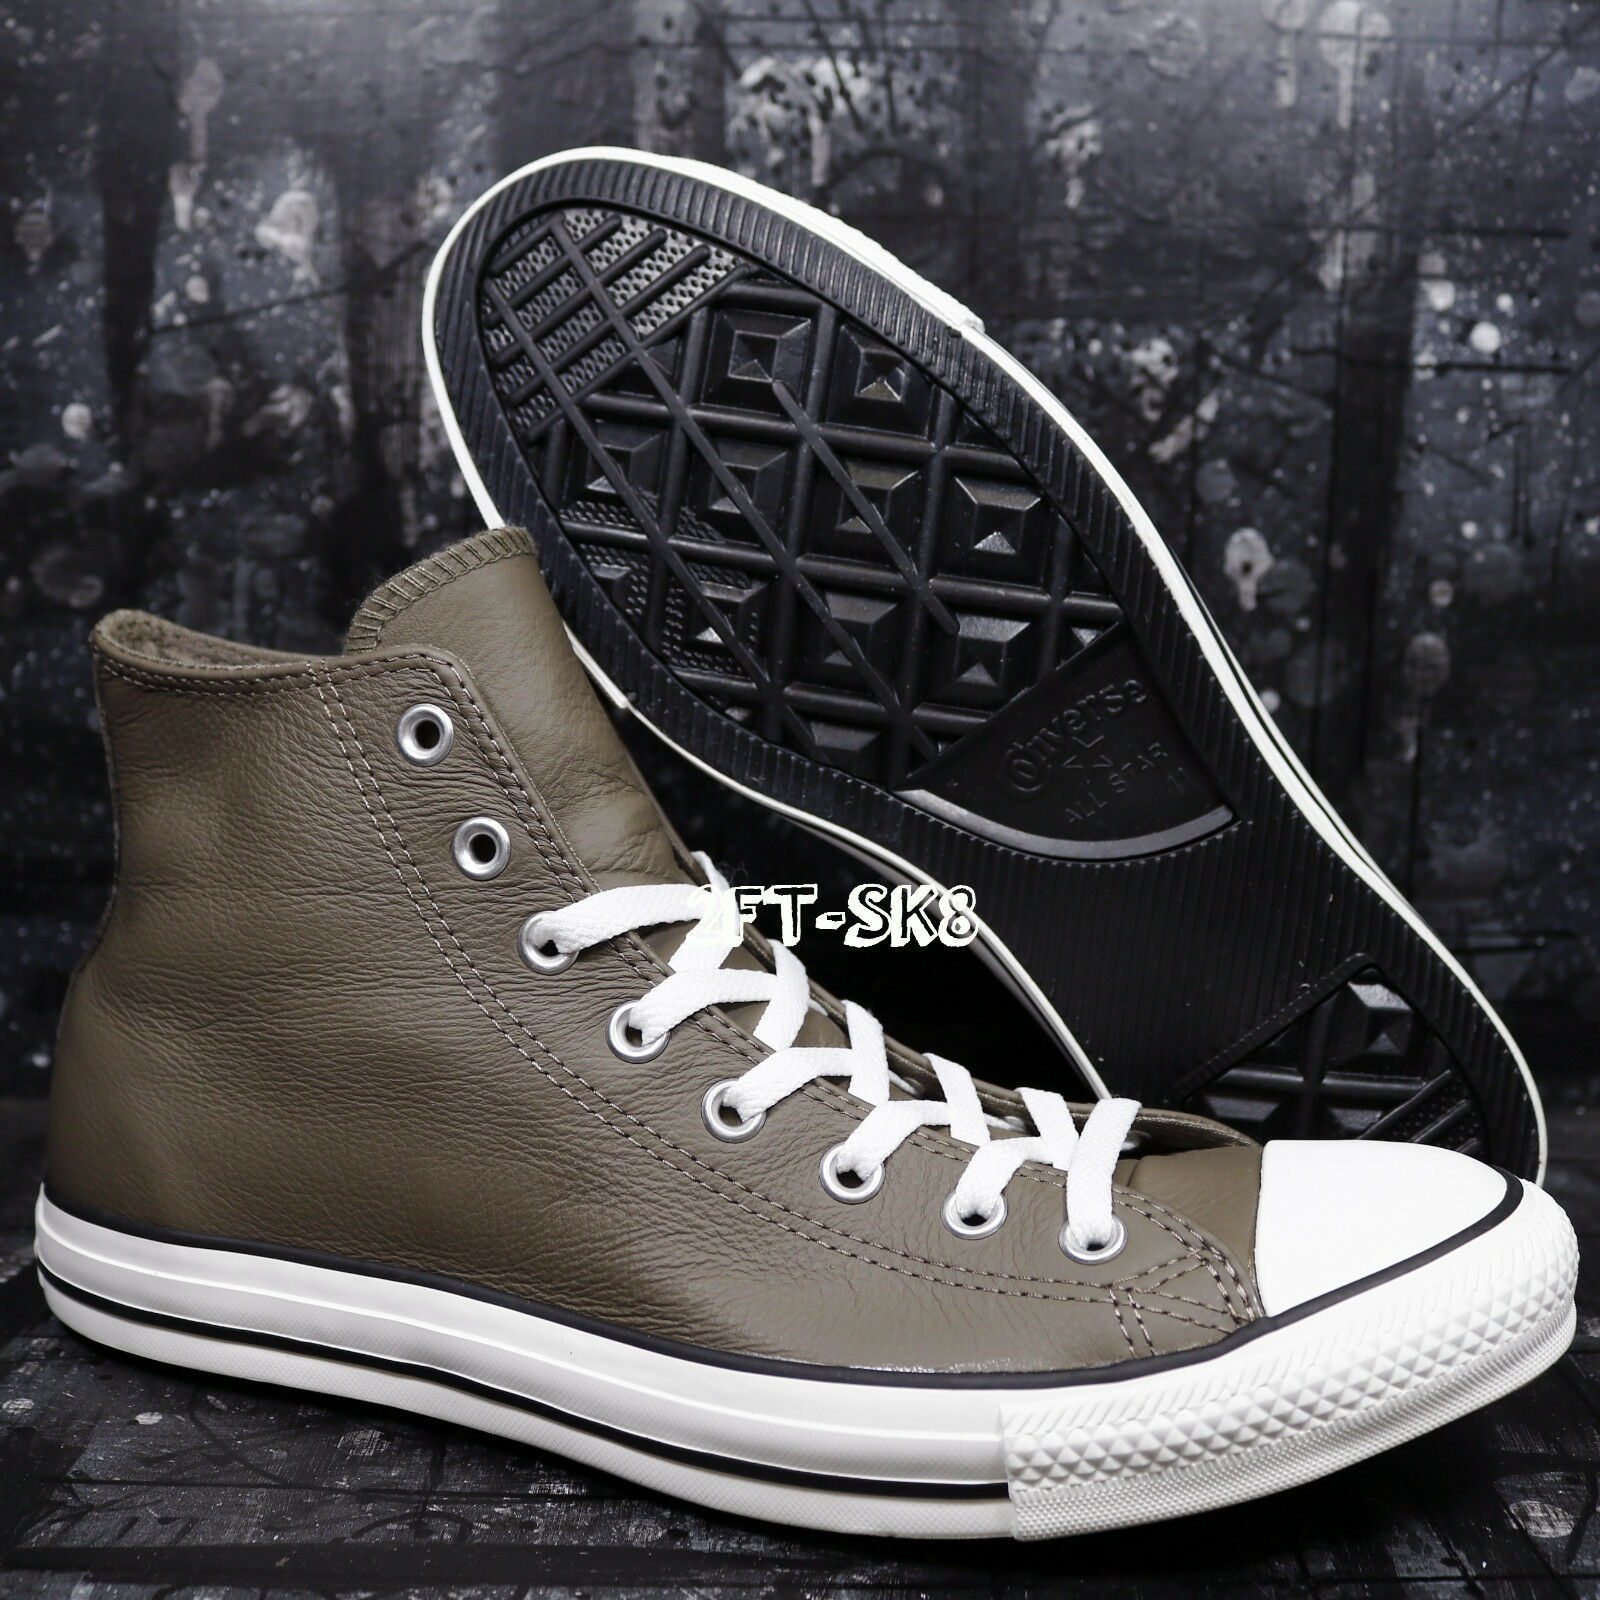 Converse CHUCK TAYLOR HI MOREL Homme 11 SKATE Chaussures D89128.337